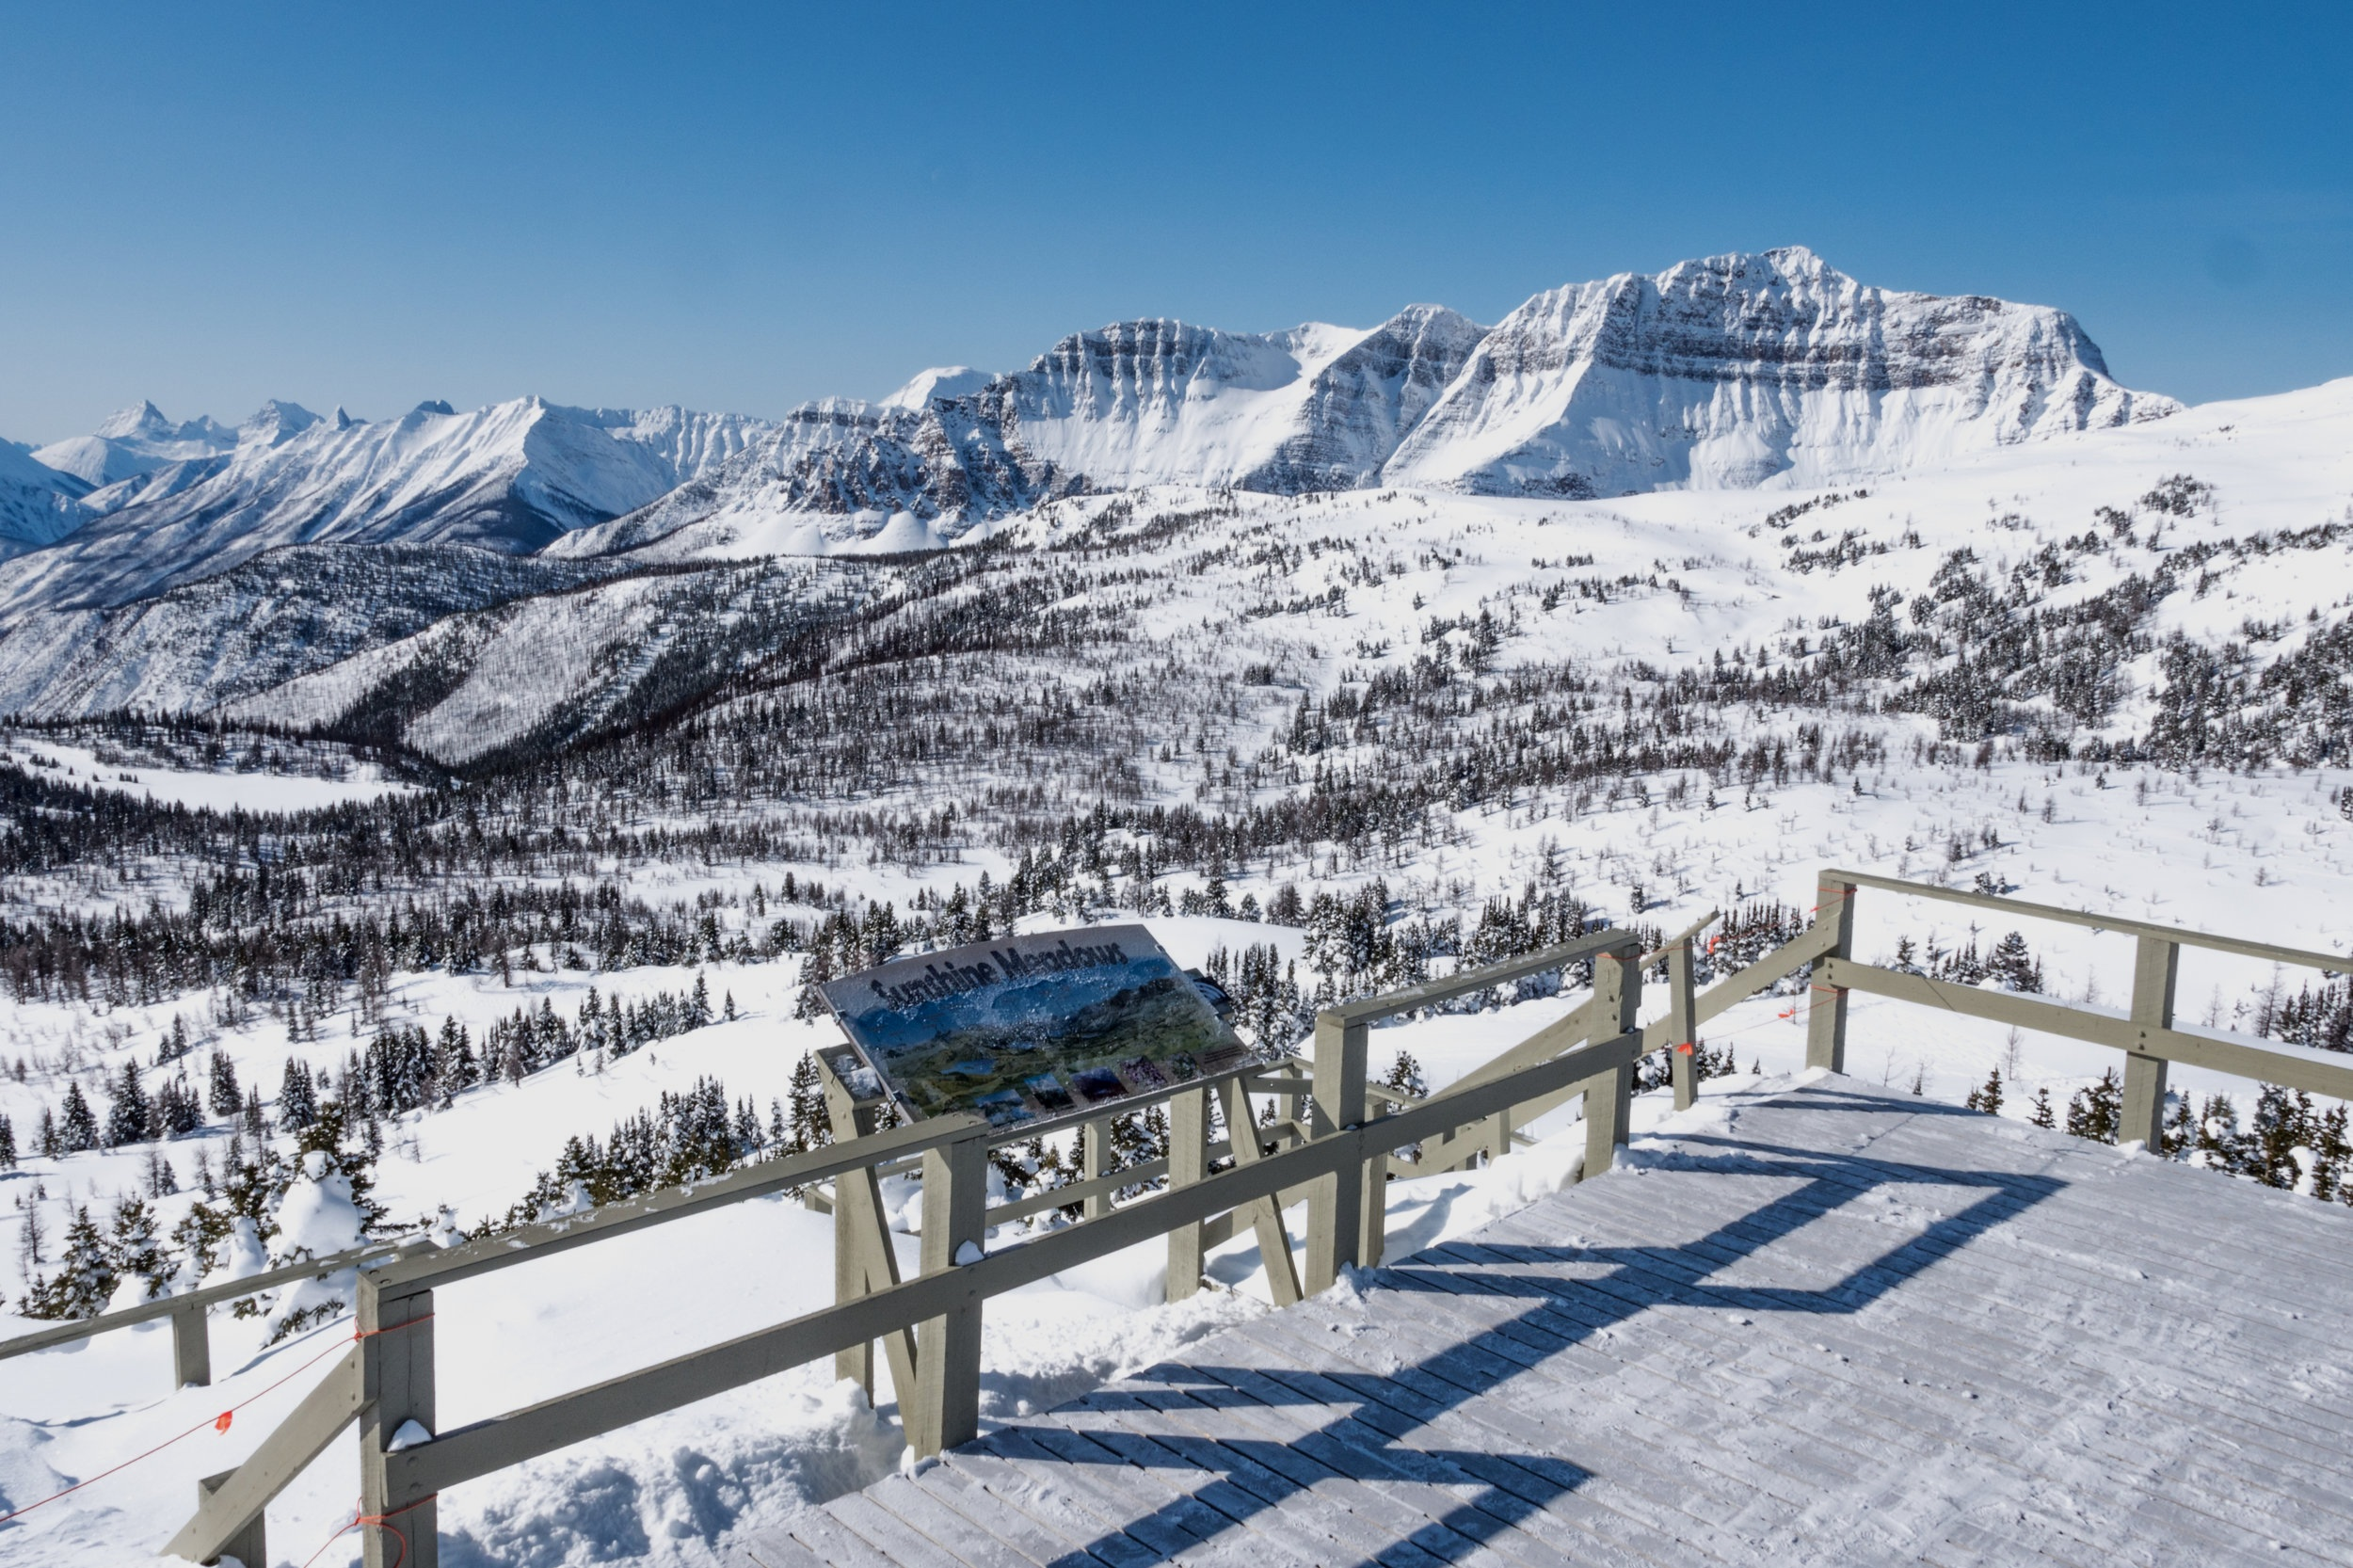 Standish Sightseeing - You don't need to be a skier or snowboarder to take in the out-of-this-world views that Banff Sunshine has to offer. Ride up the Standish chair and walk out to the Standish Lookout deck . Enjoy 360 degree view